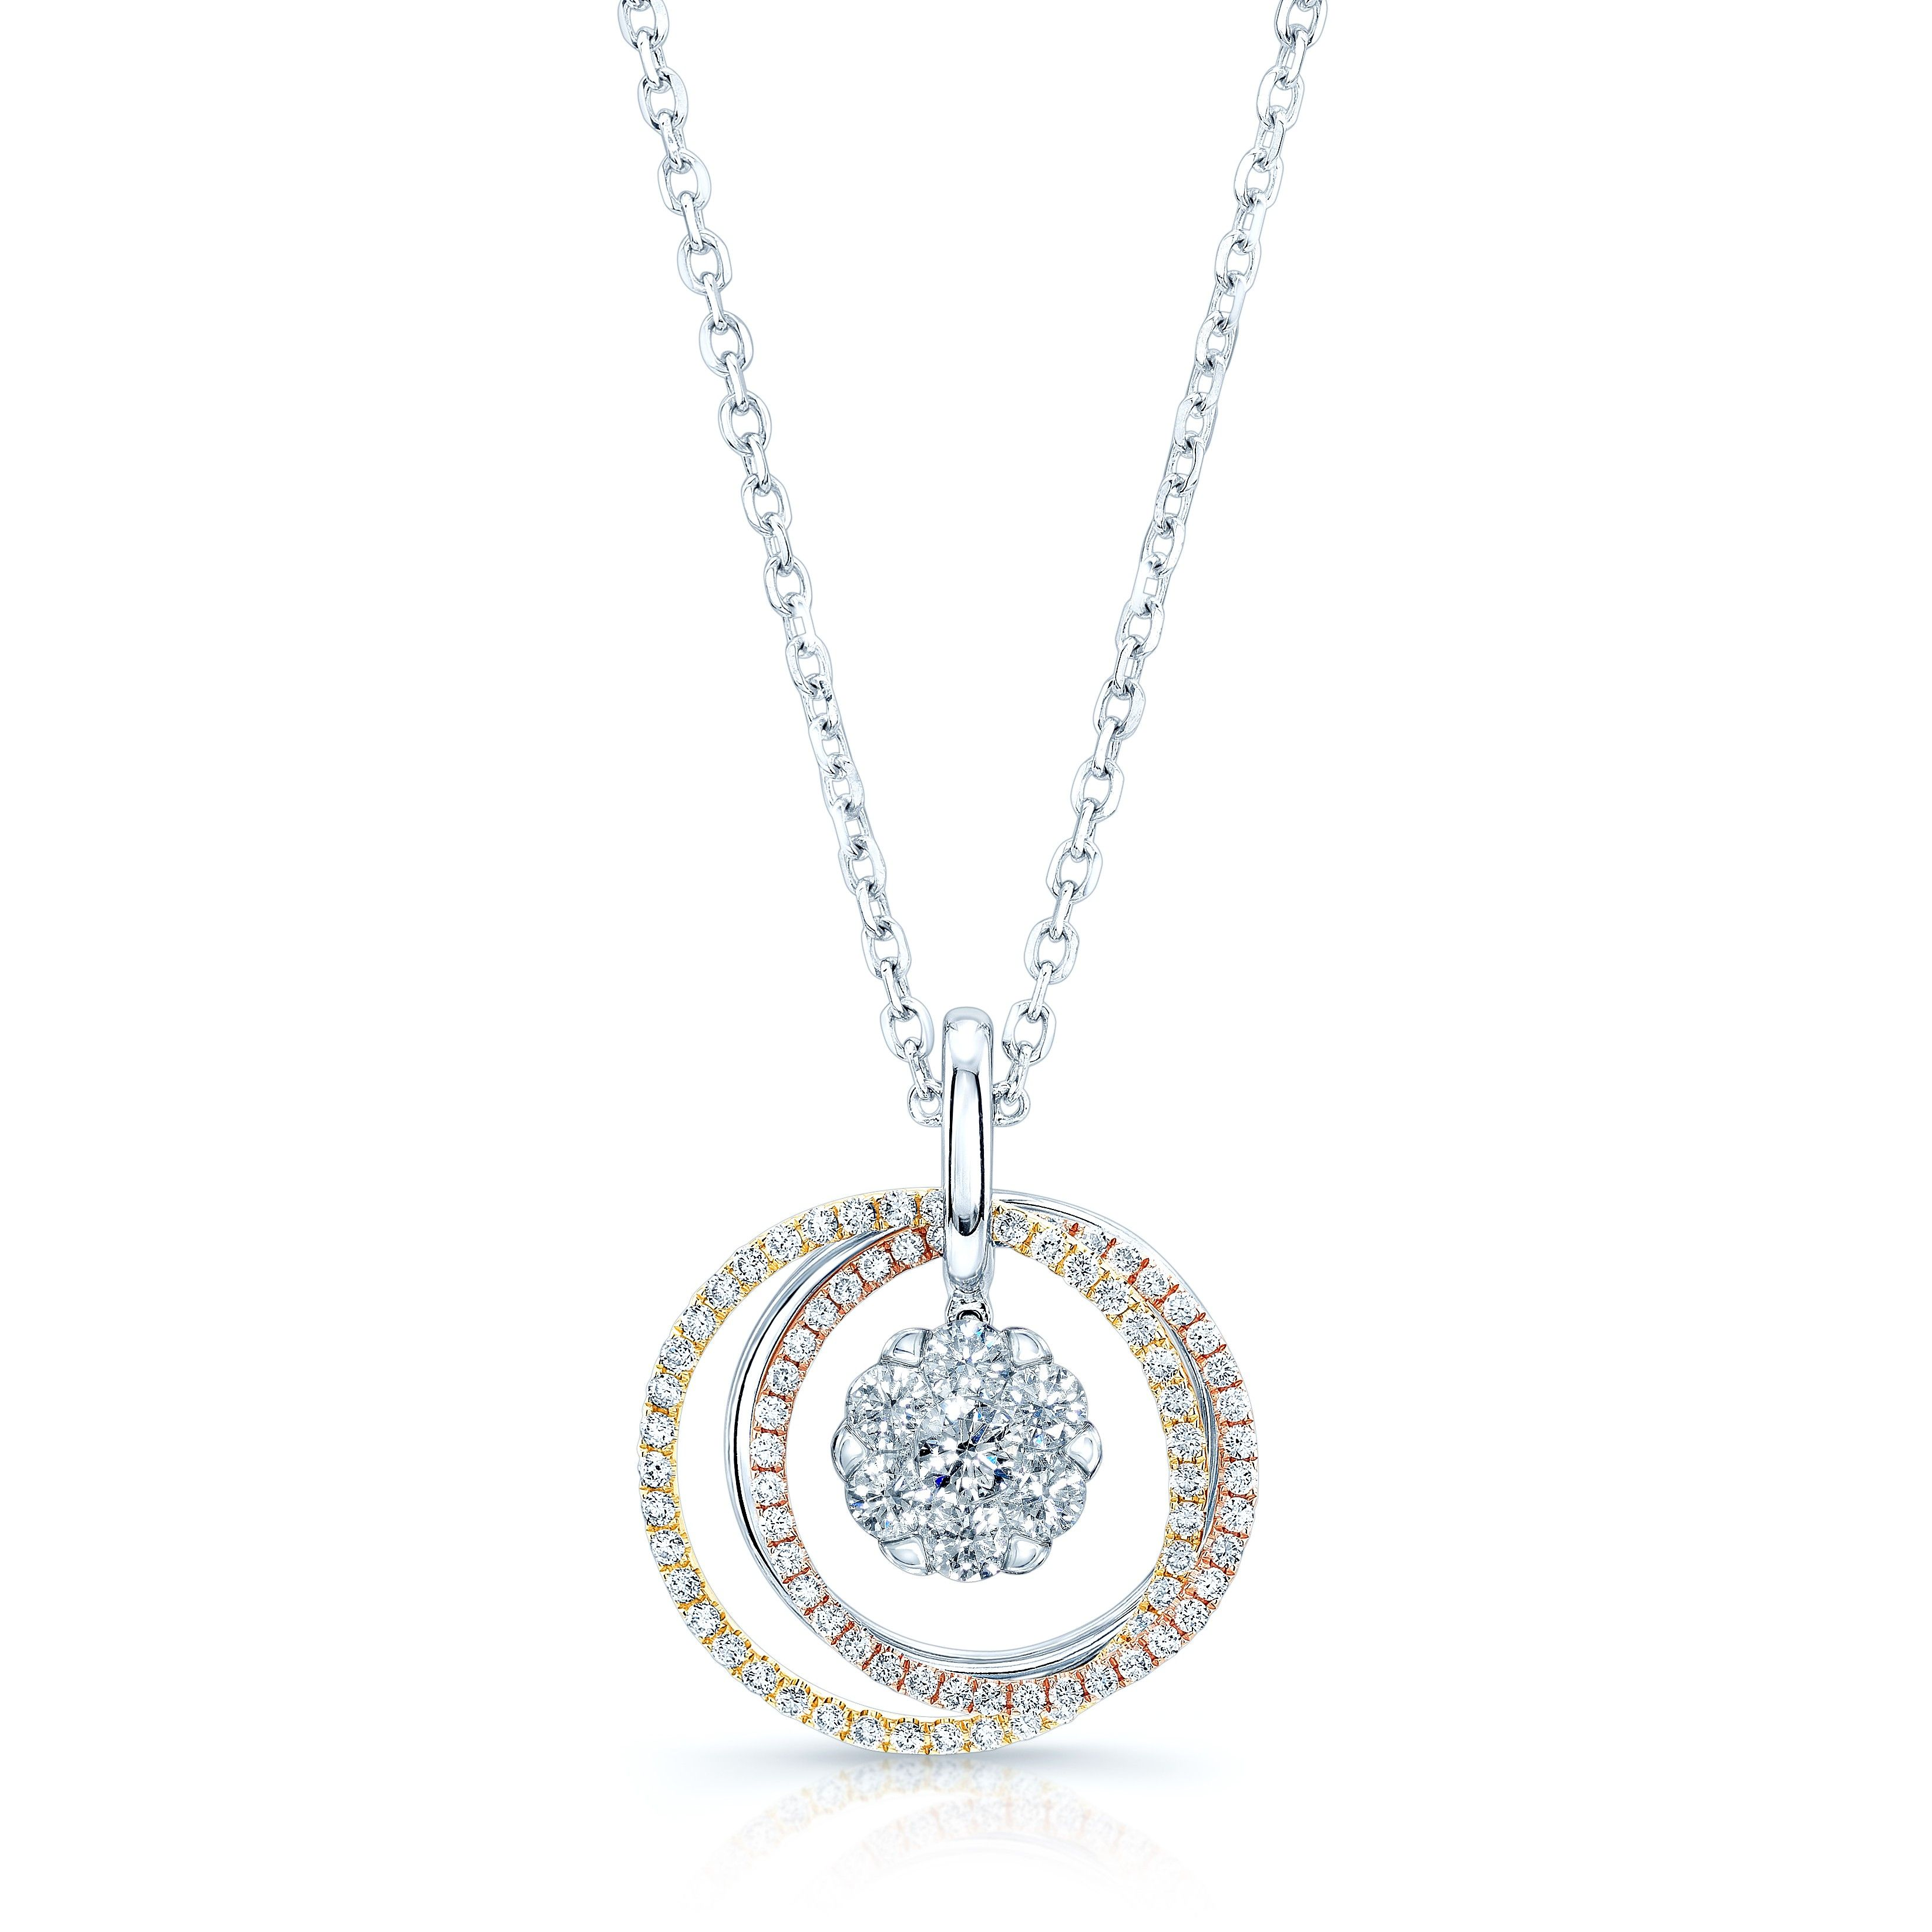 Amazing Diamond Pendant - Ziva Necklace 1.78 Total Diamond Weight Conflict Free Round Brilliant Cut Diamonds Diamond Color - Near Colorless (G, H, I)  Diamond Clarity - VS/SI Clarity Coronet Solitaire Patented Cluster 14 Karat White, Rose, & Yellow Gold Item# FM51863WEB-275E